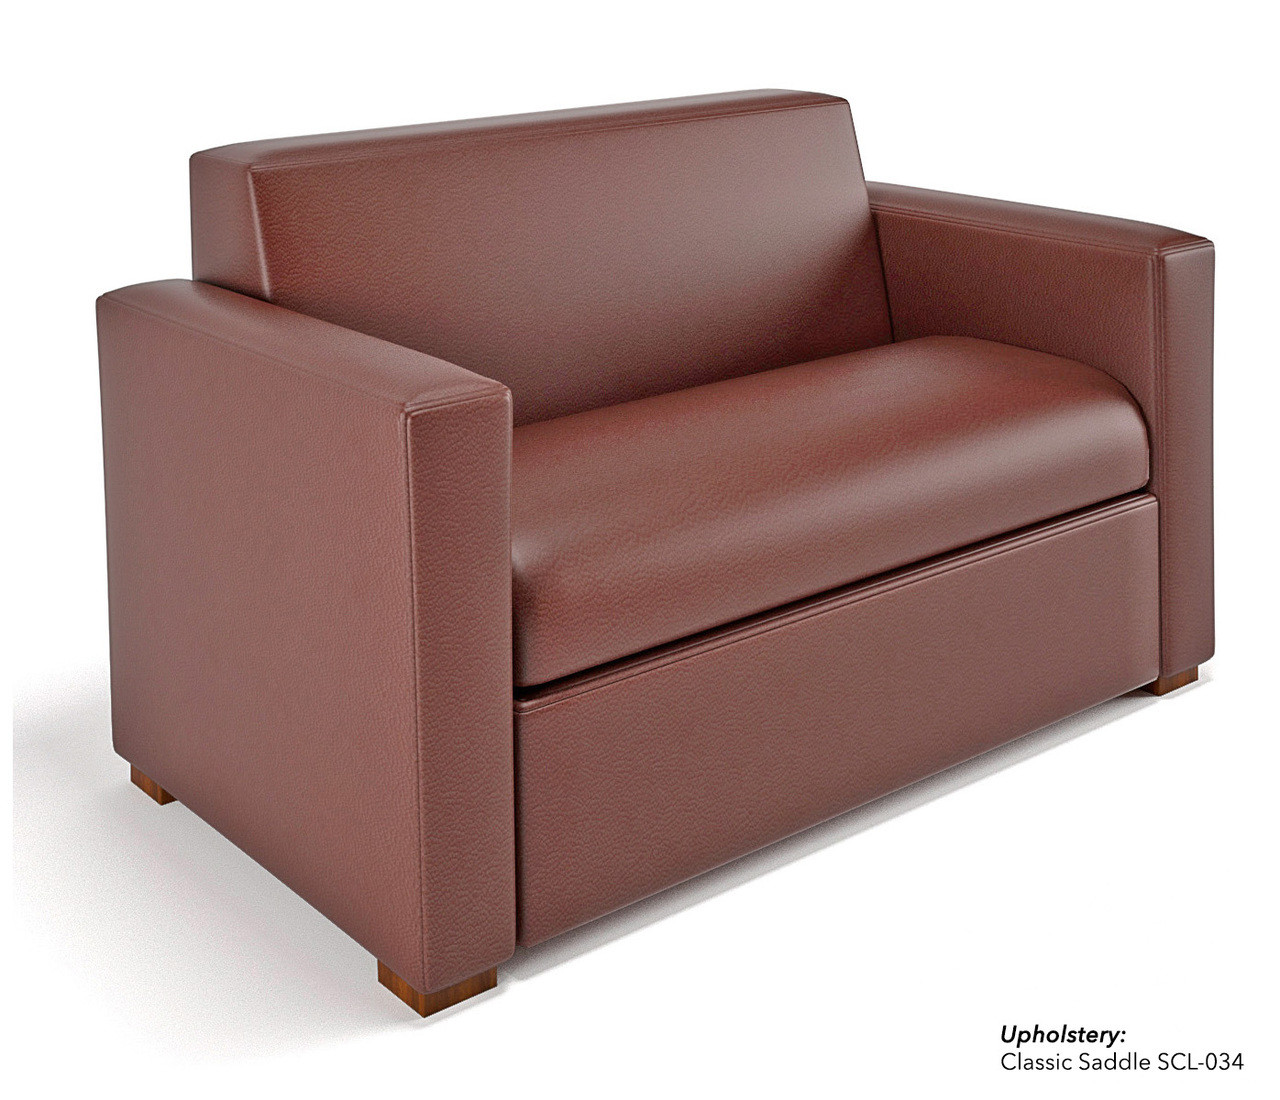 Pleasant Classic Design For High Traffic Areas Kentwood Sofa Made Ncnpc Chair Design For Home Ncnpcorg